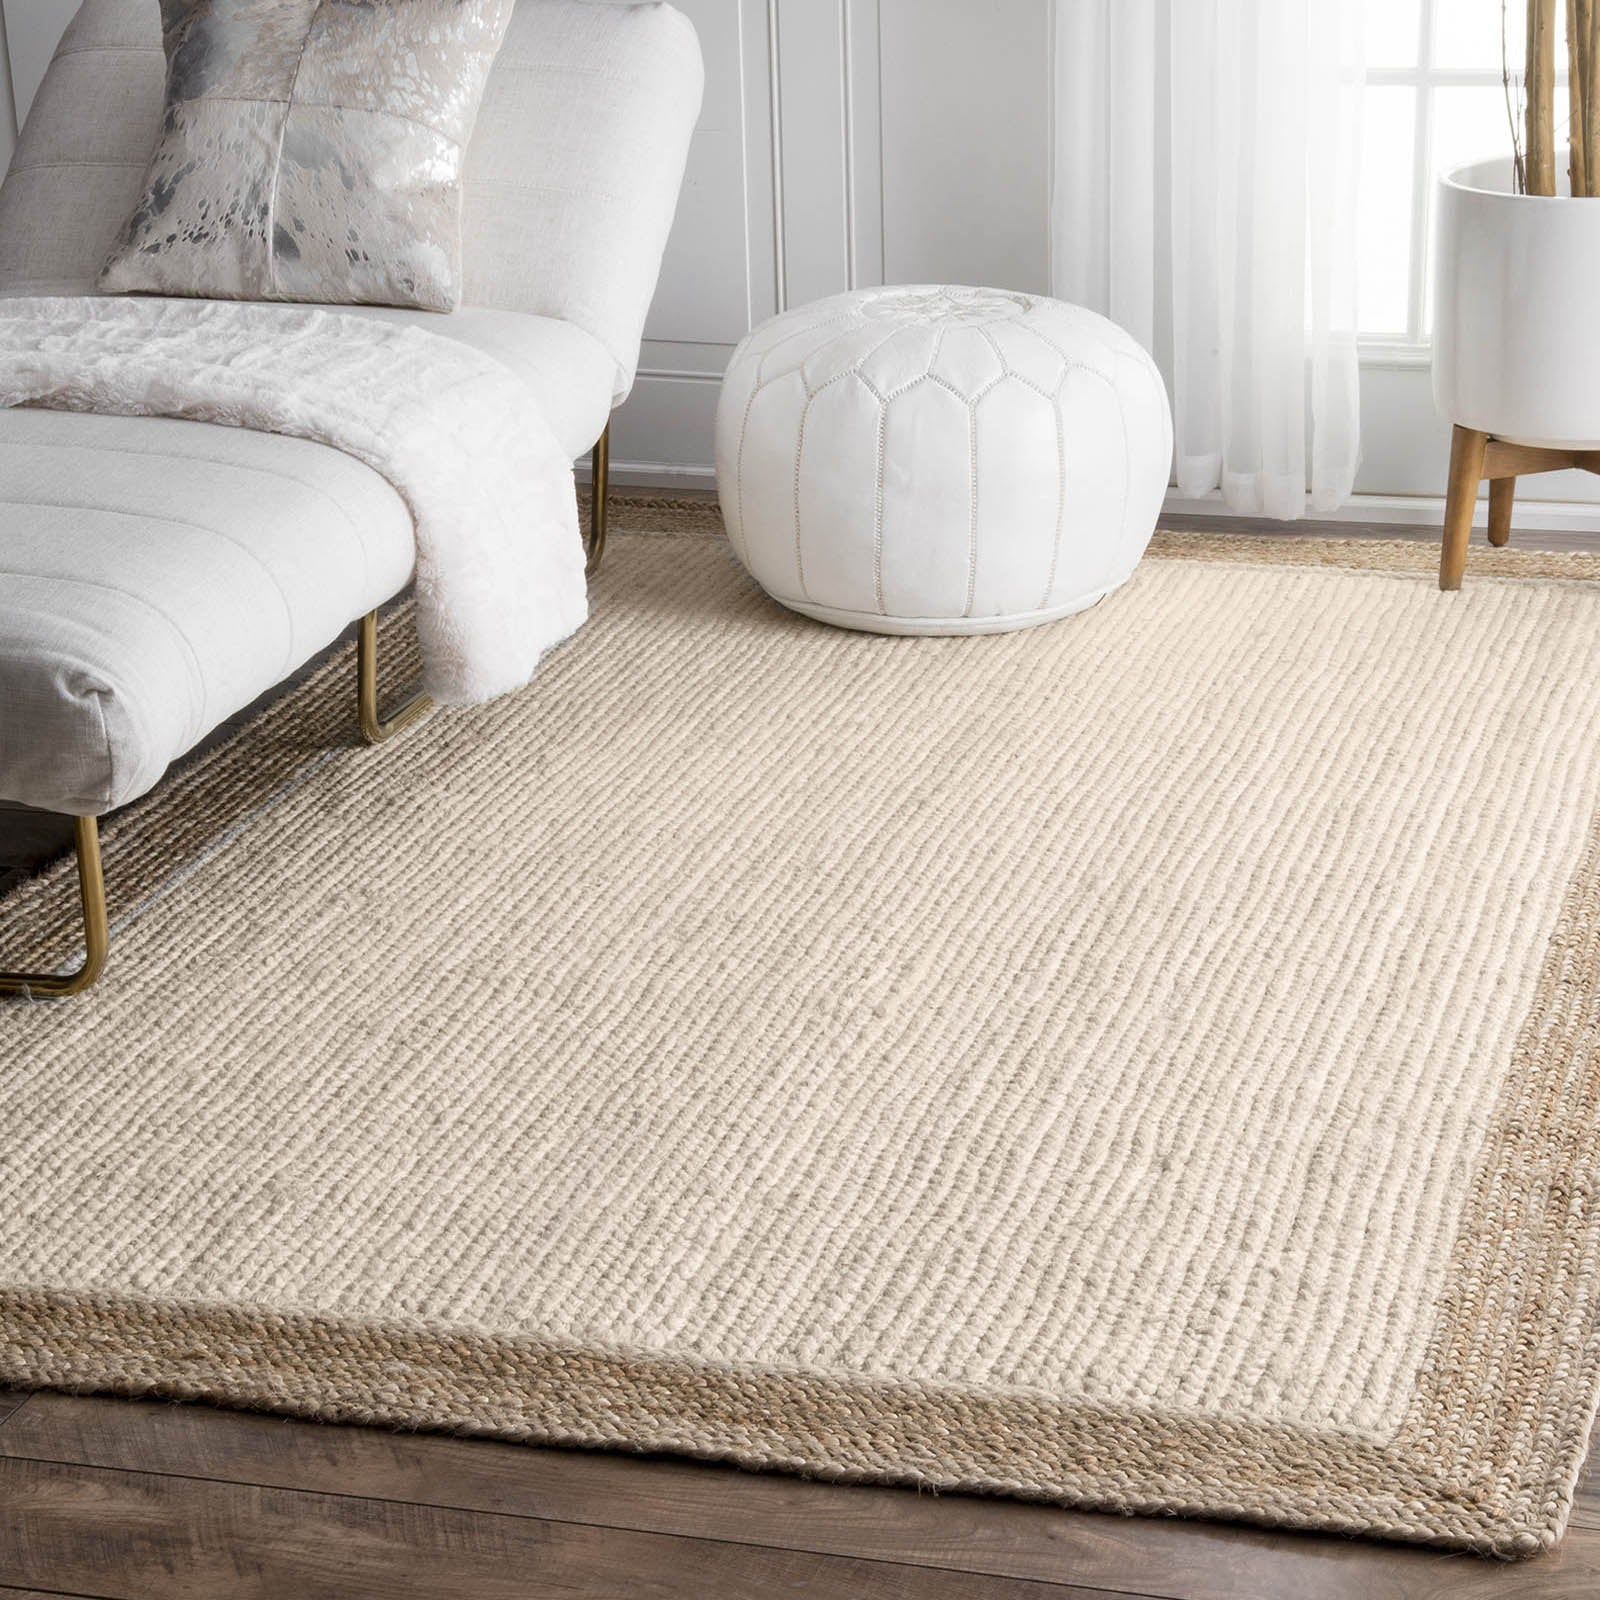 90X130 cm Braided Handmade Jute Rug Braided-001S